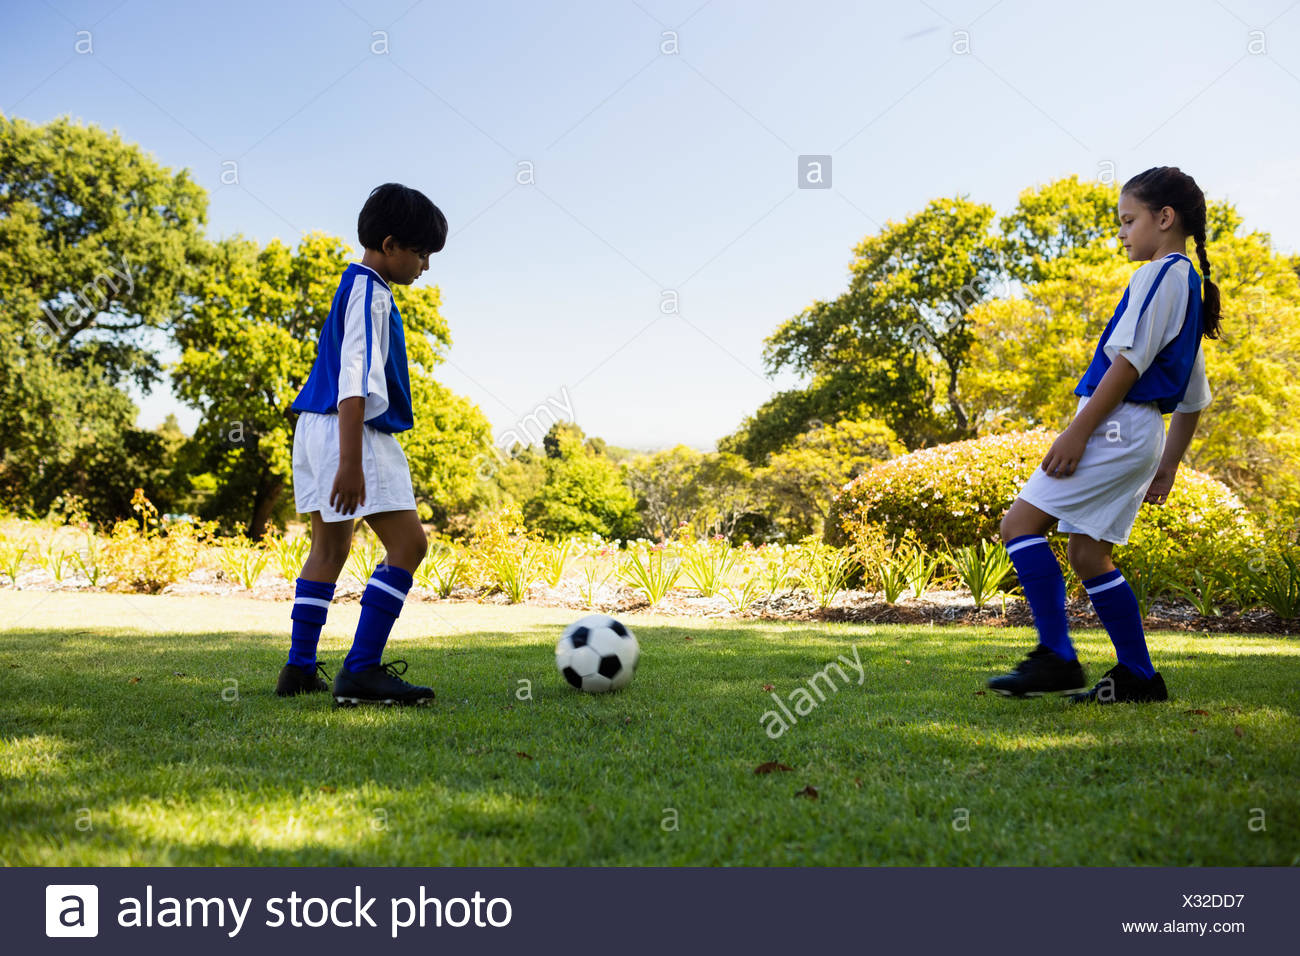 Cute football players playing football Stock Photo